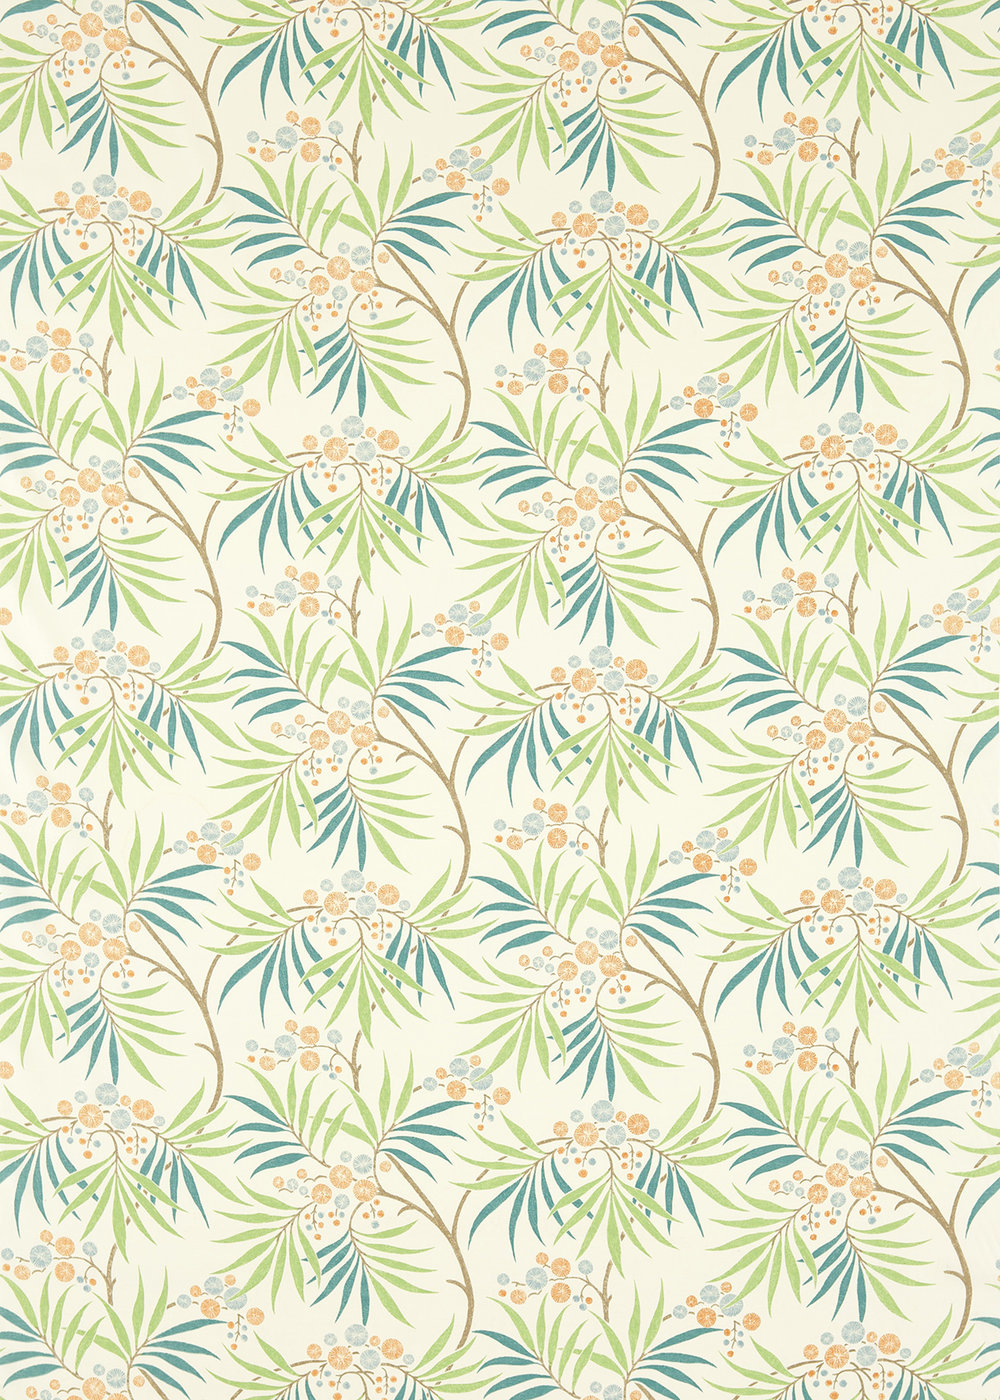 Sanderson Arberella  Coral/Teal Fabric - Product code: 223588